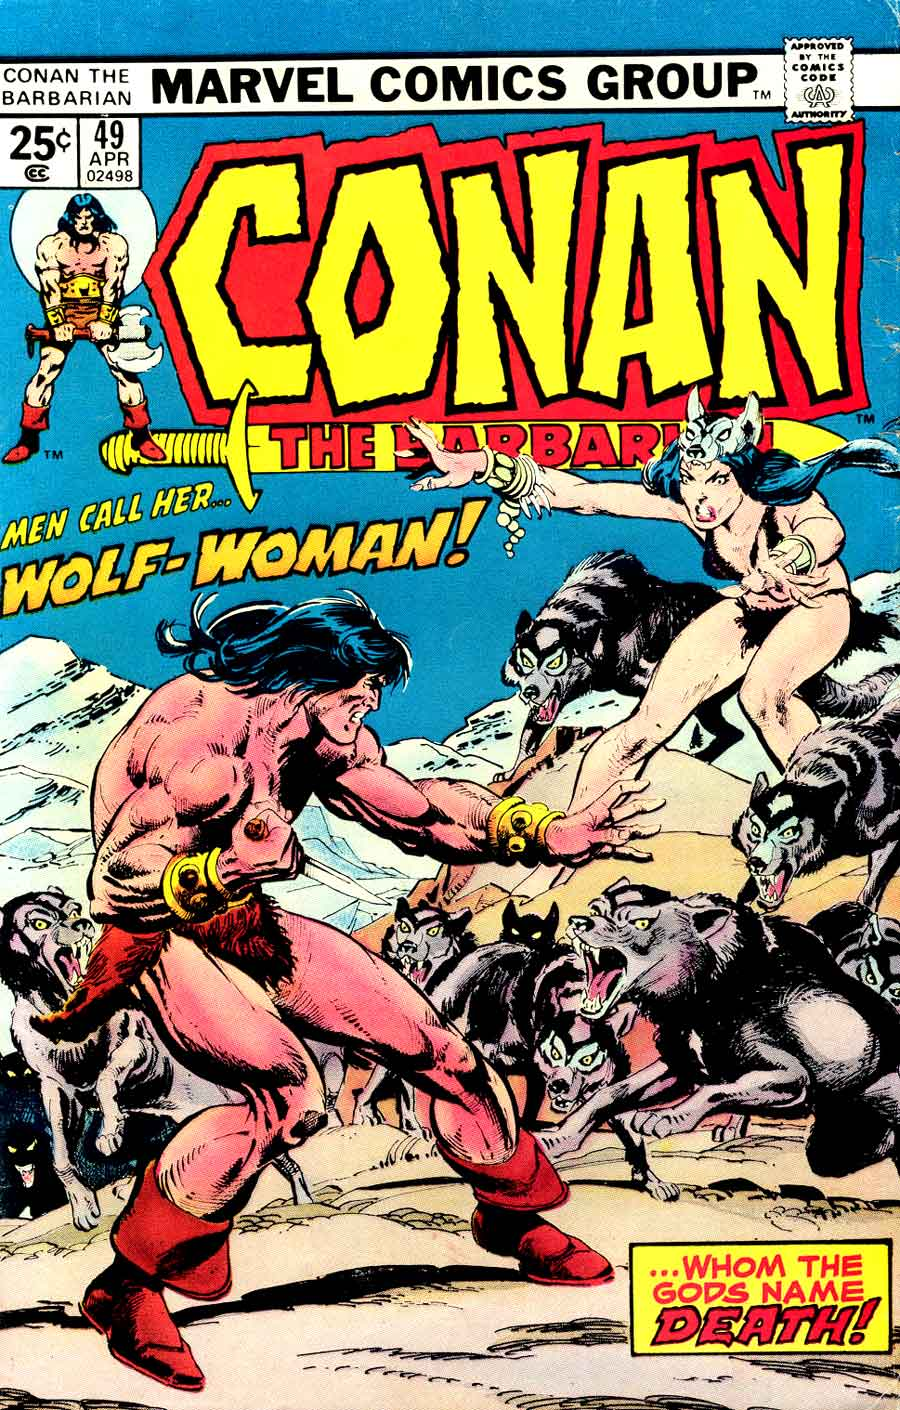 Conan the Barbarian v1 #49 marvel comic book cover art by Neal Adams